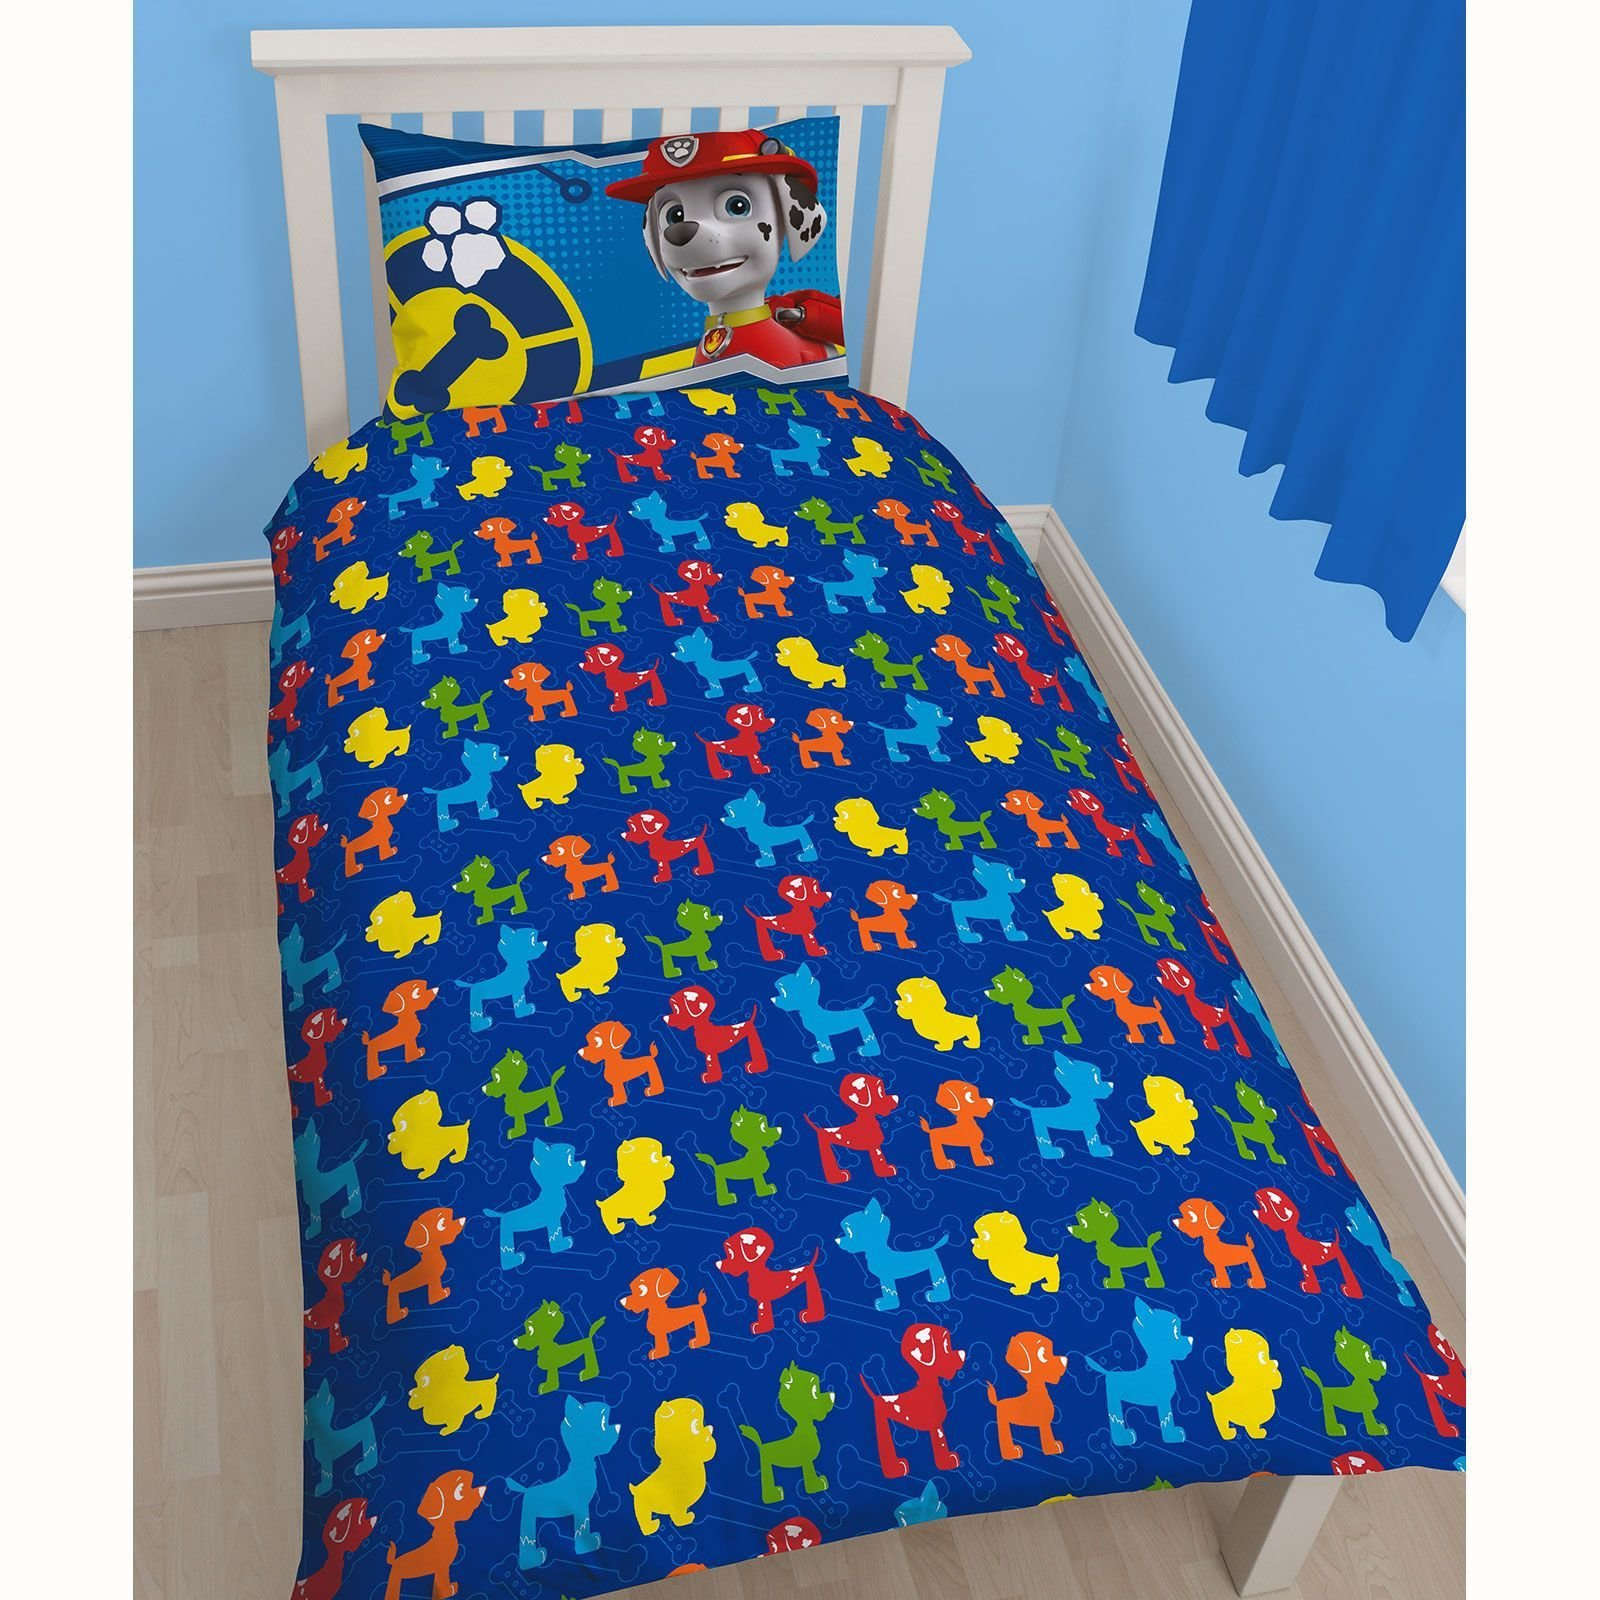 Best Paw Patrol Rescue Bedroom Range Single Duvet Cover Curtains Available Kids New Ebay With Pictures